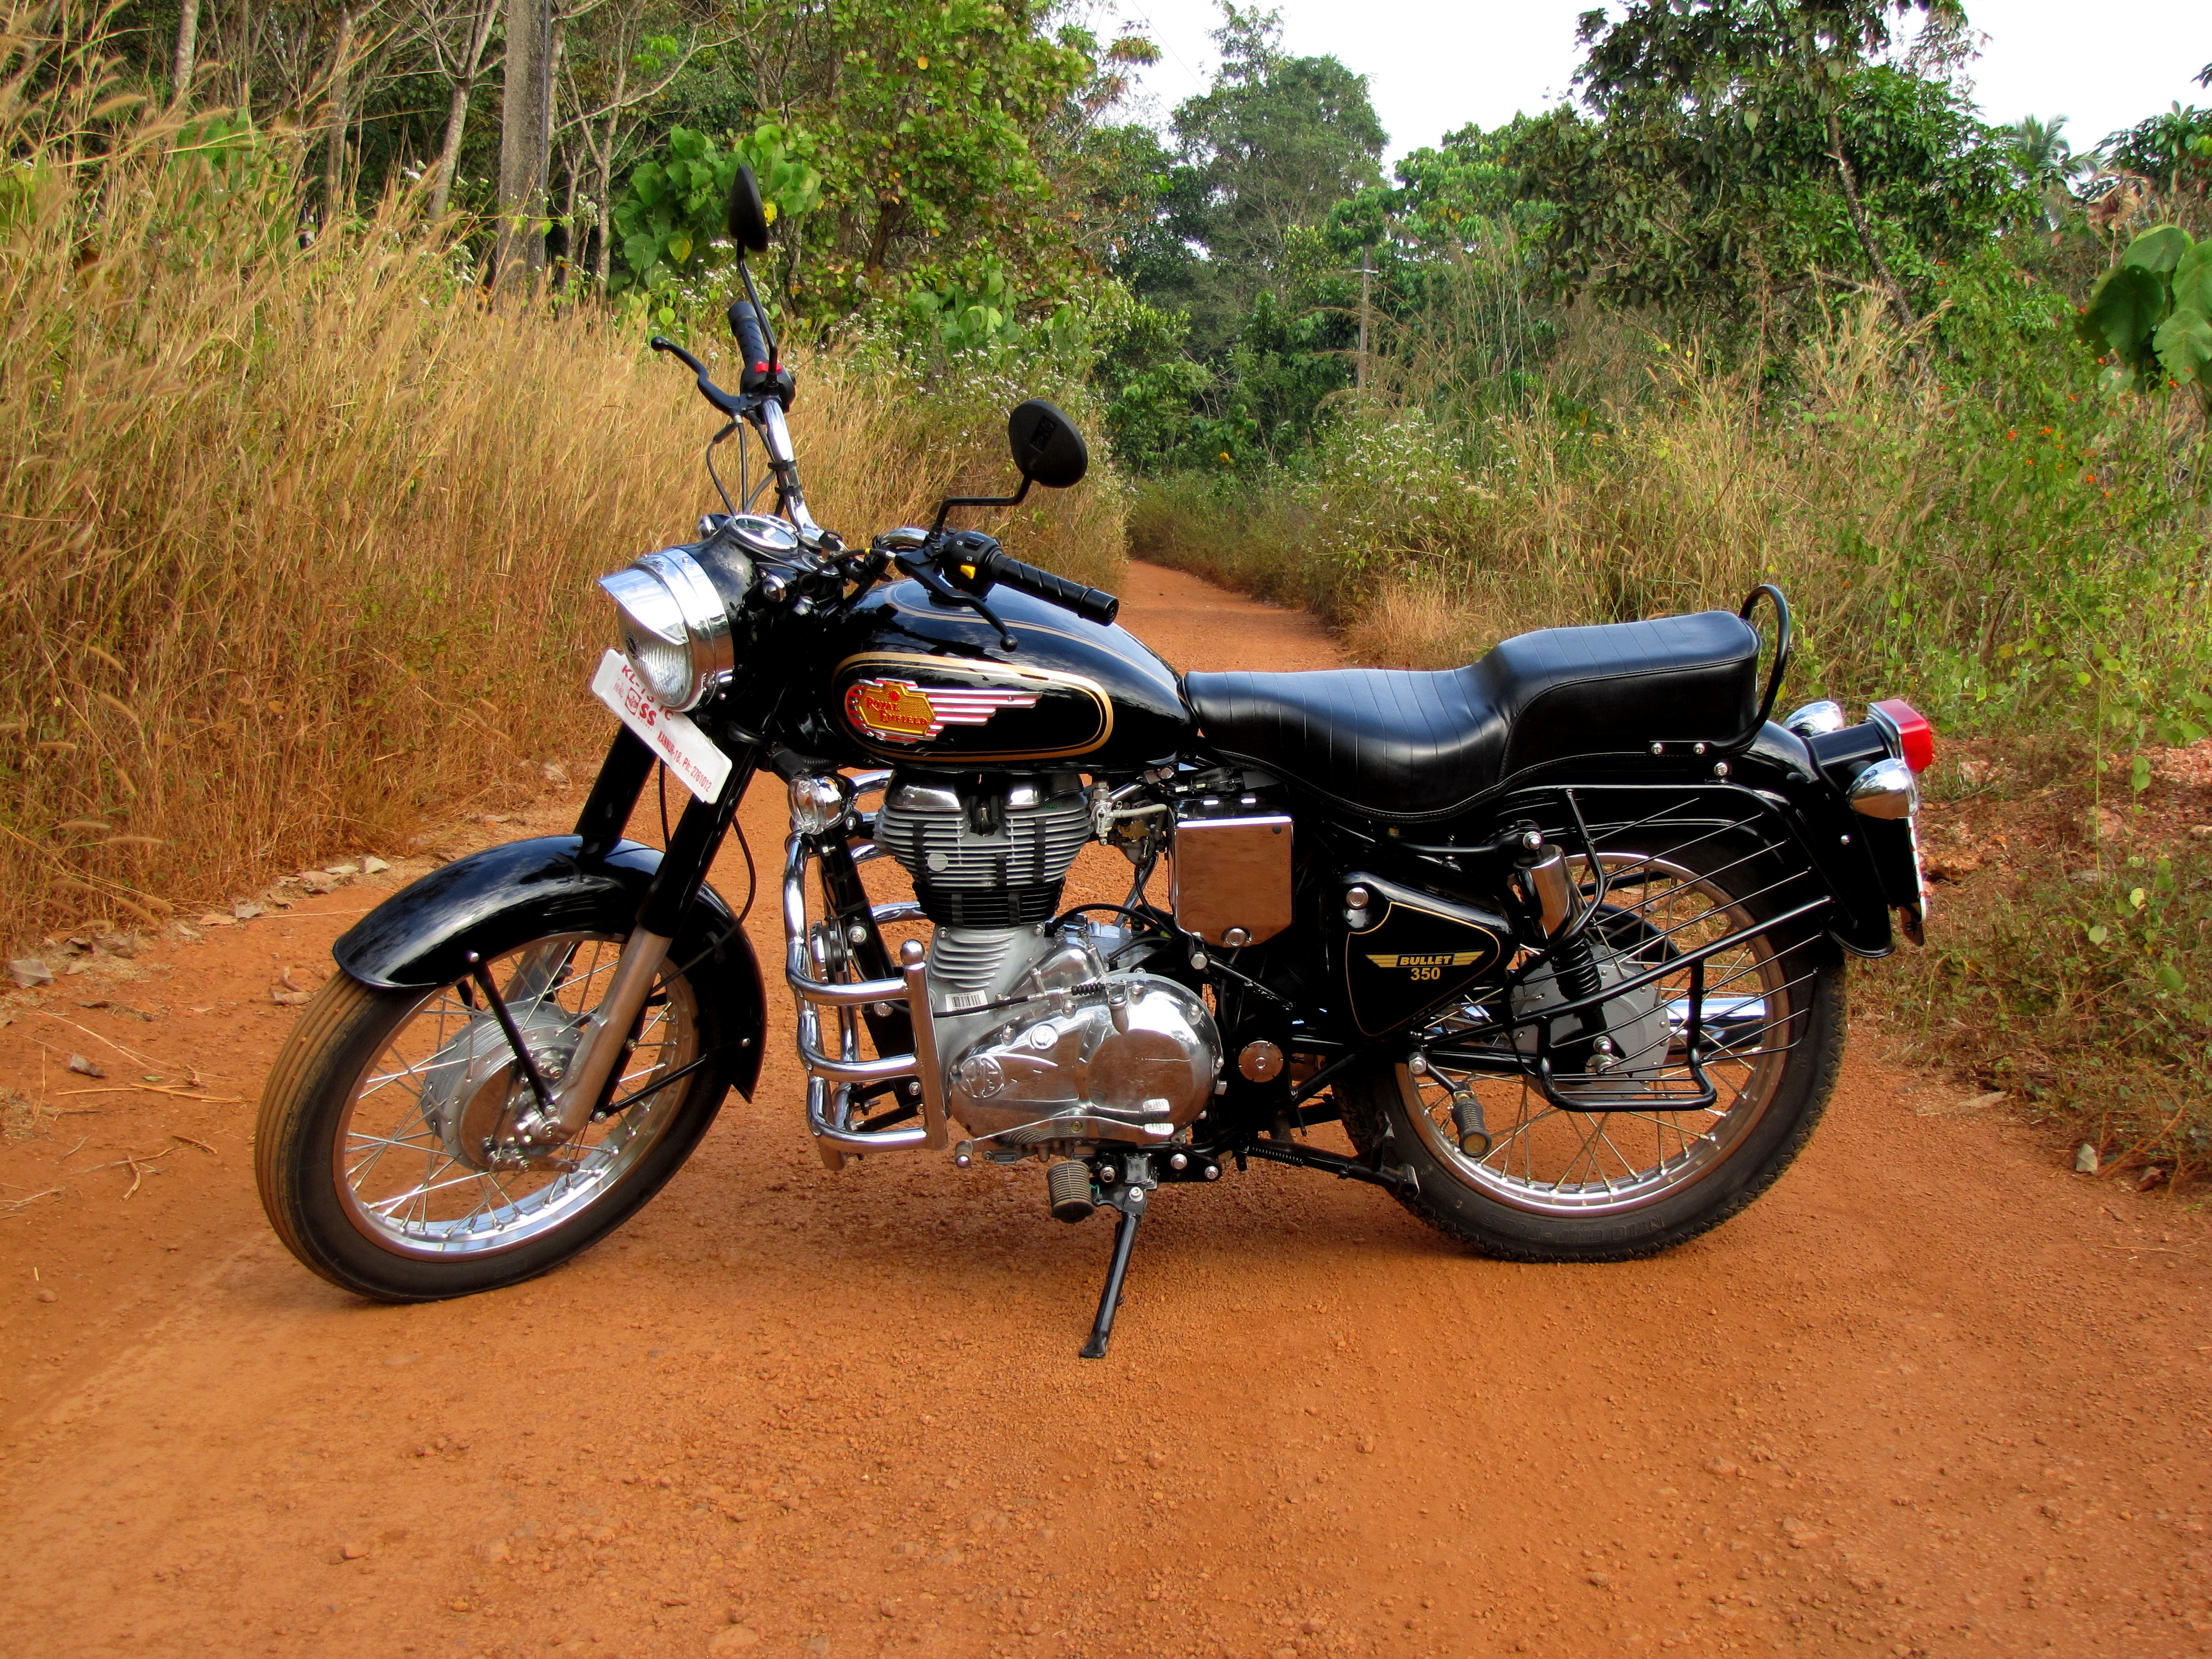 Royal Enfield Bullet 350 Army 2002 images #123579